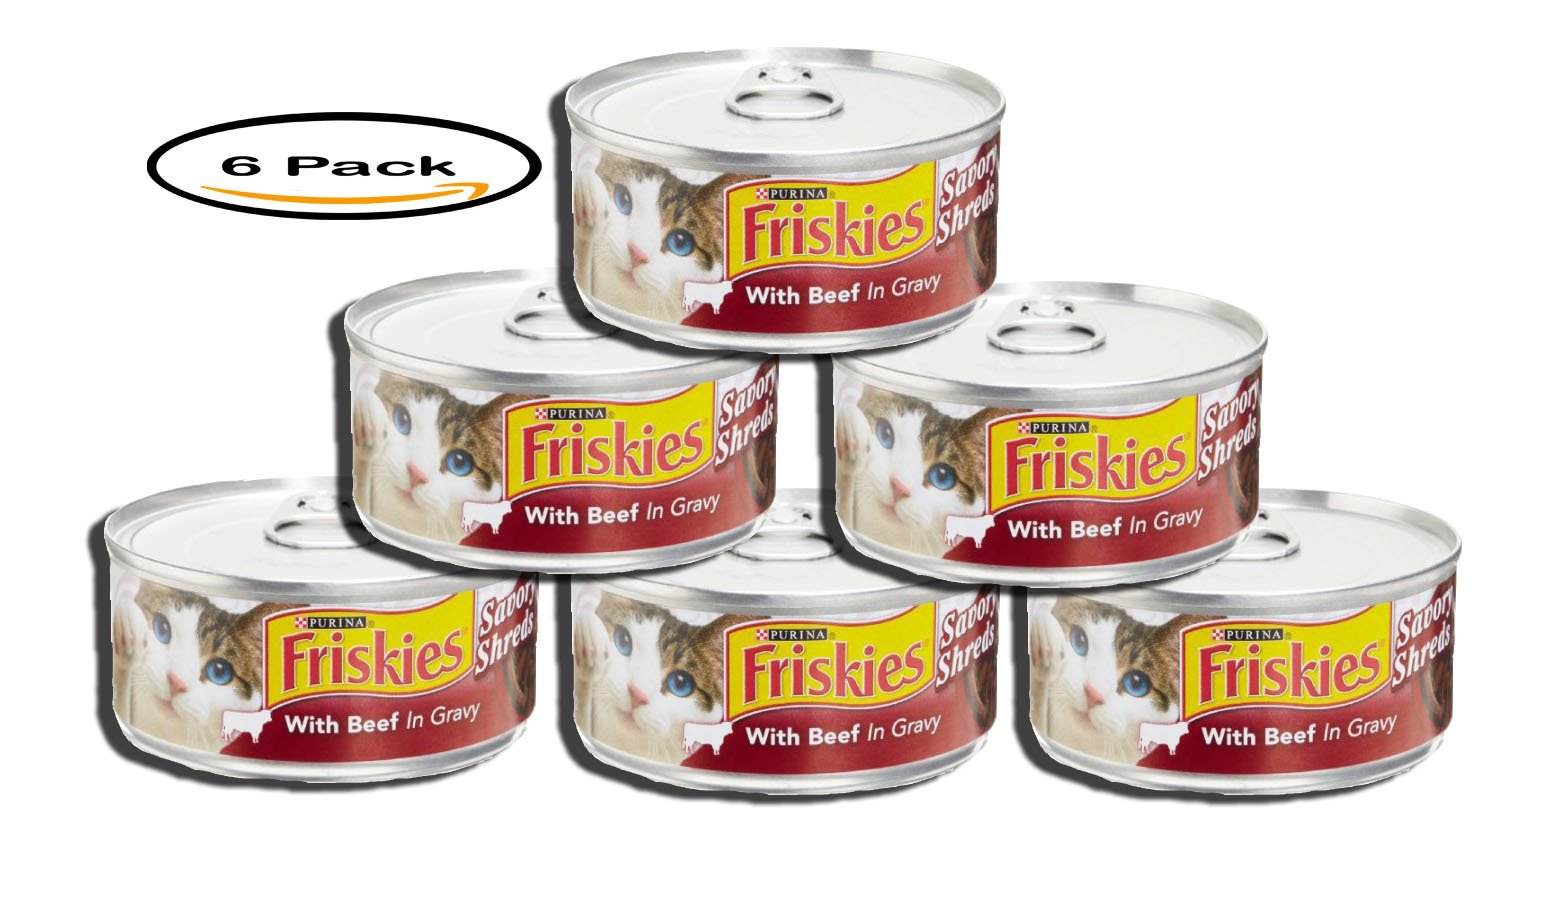 PACK OF 6 - Purina Friskies Savory Shreds Beef in Gravy Wet Cat Food, 5.5 Oz, 24 Pack